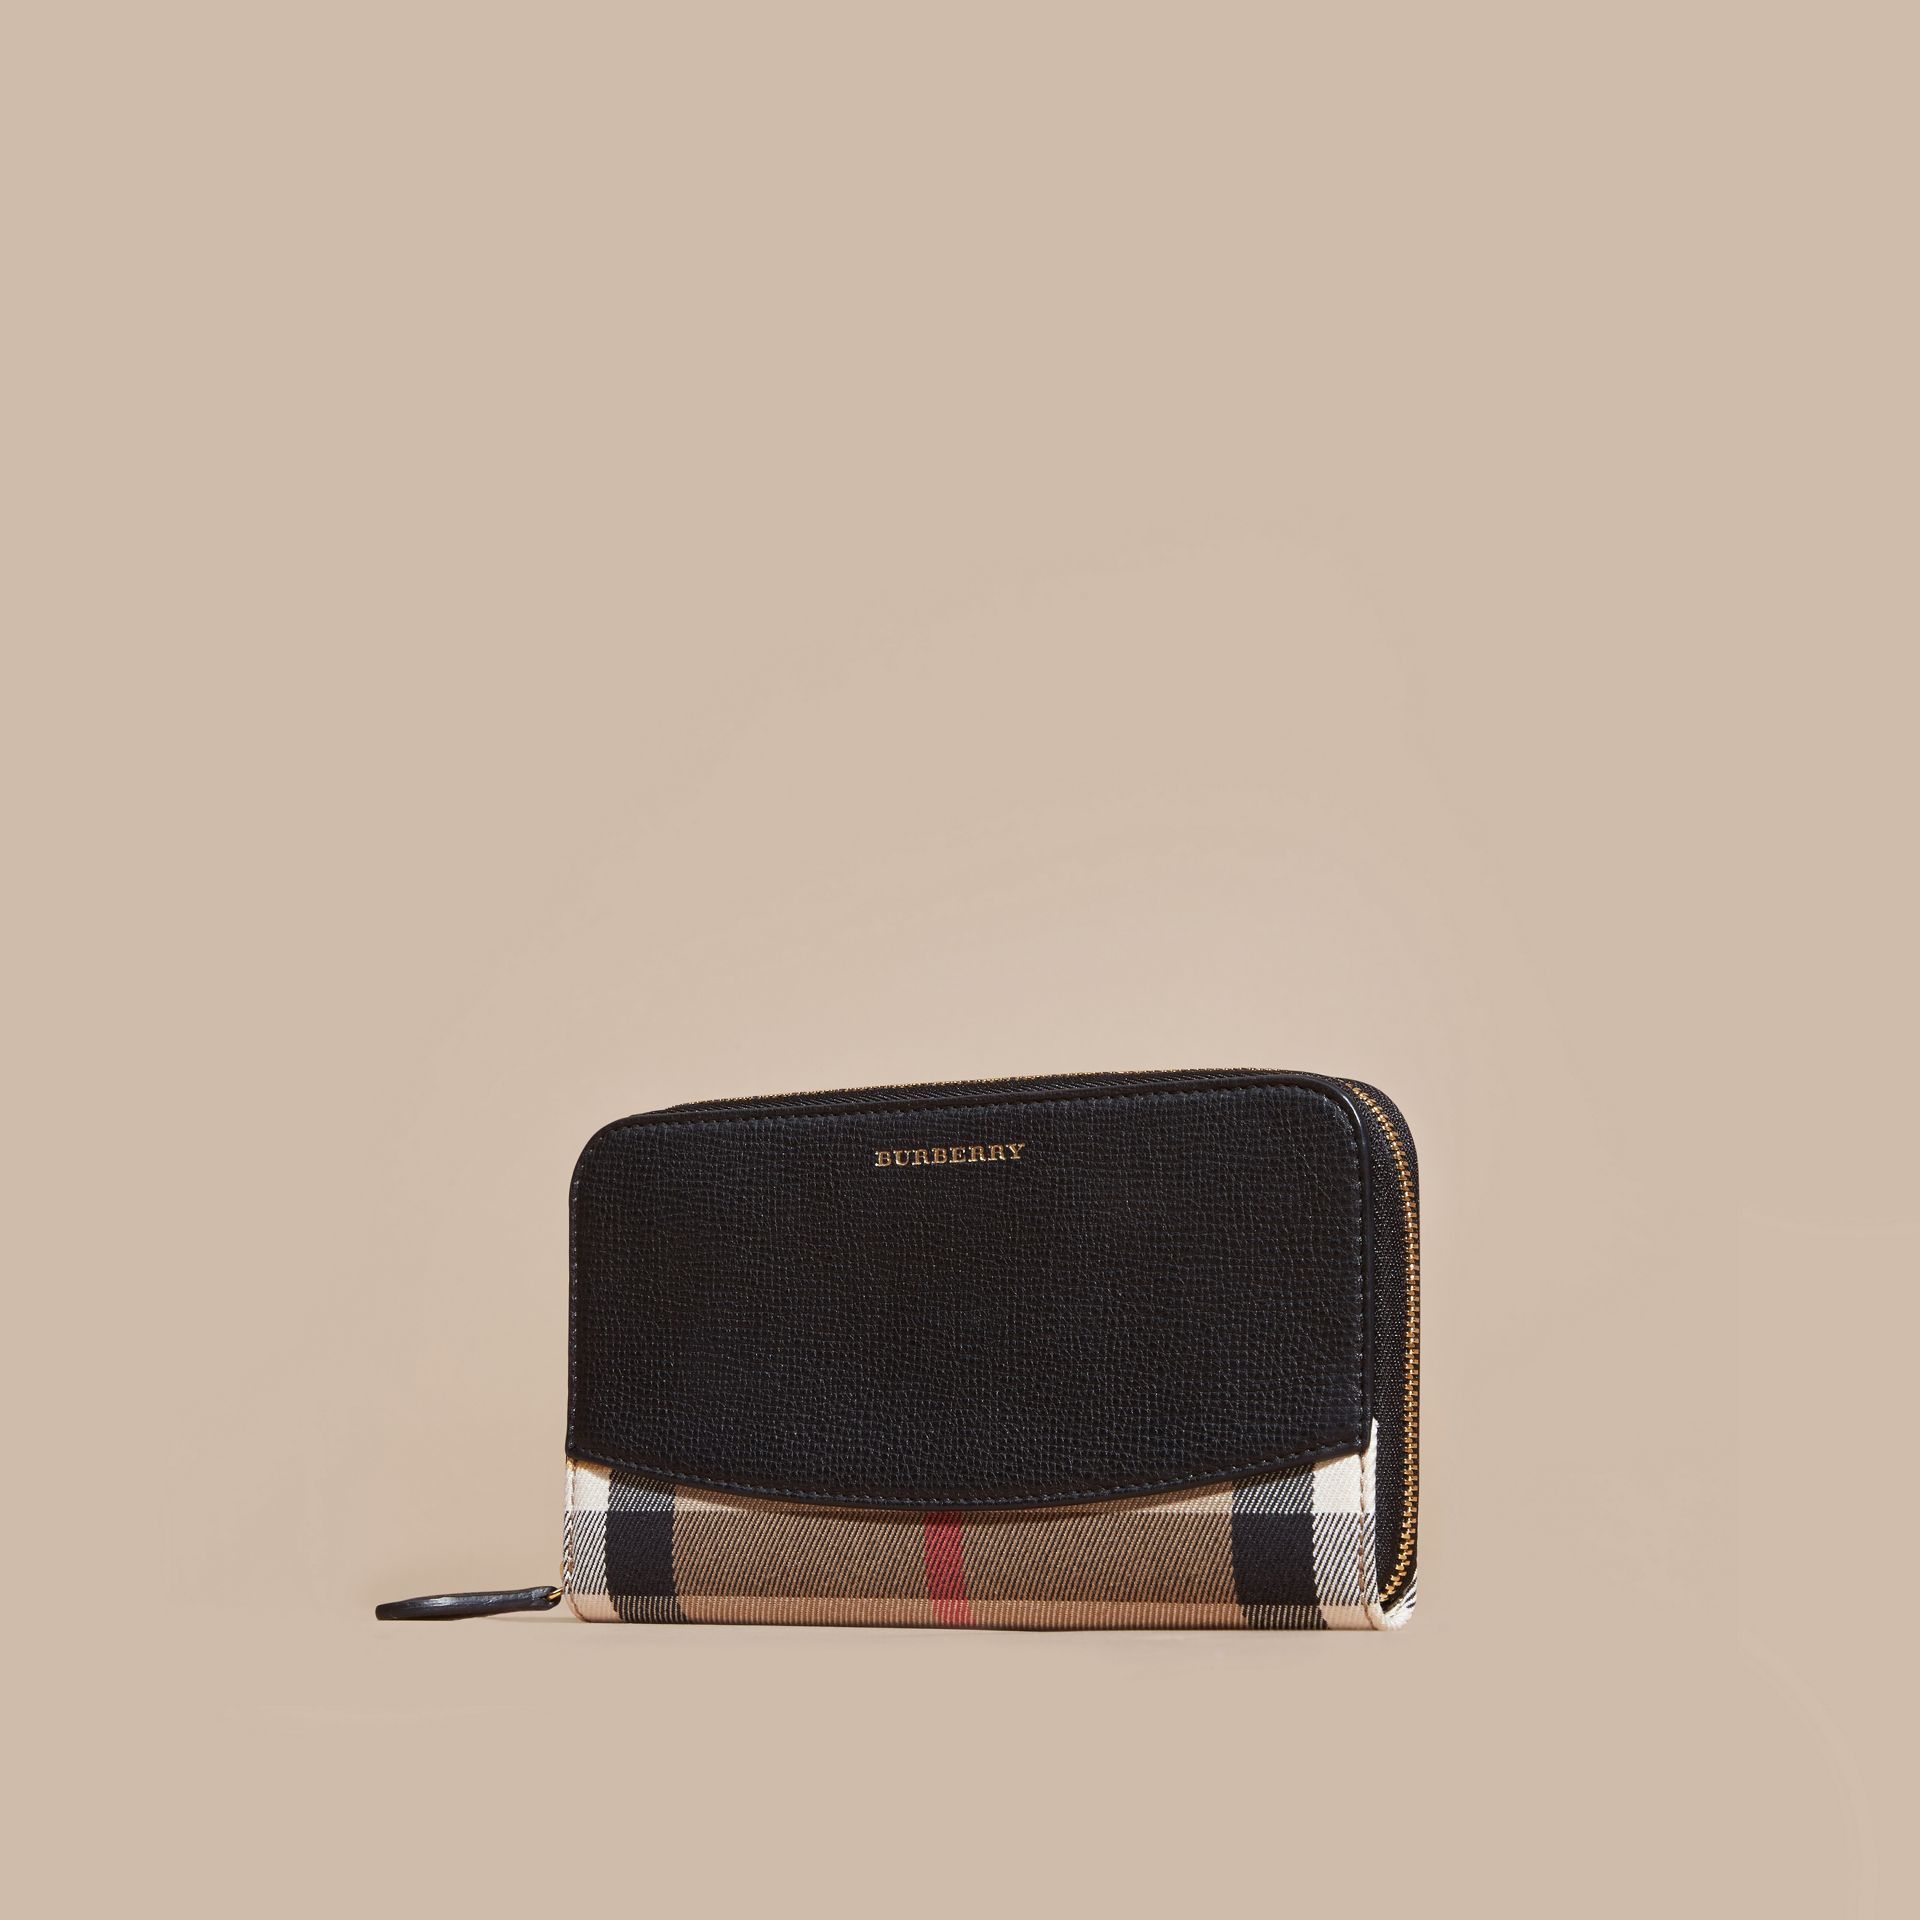 House Check and Leather Ziparound Wallet in Black - Women | Burberry - gallery image 6